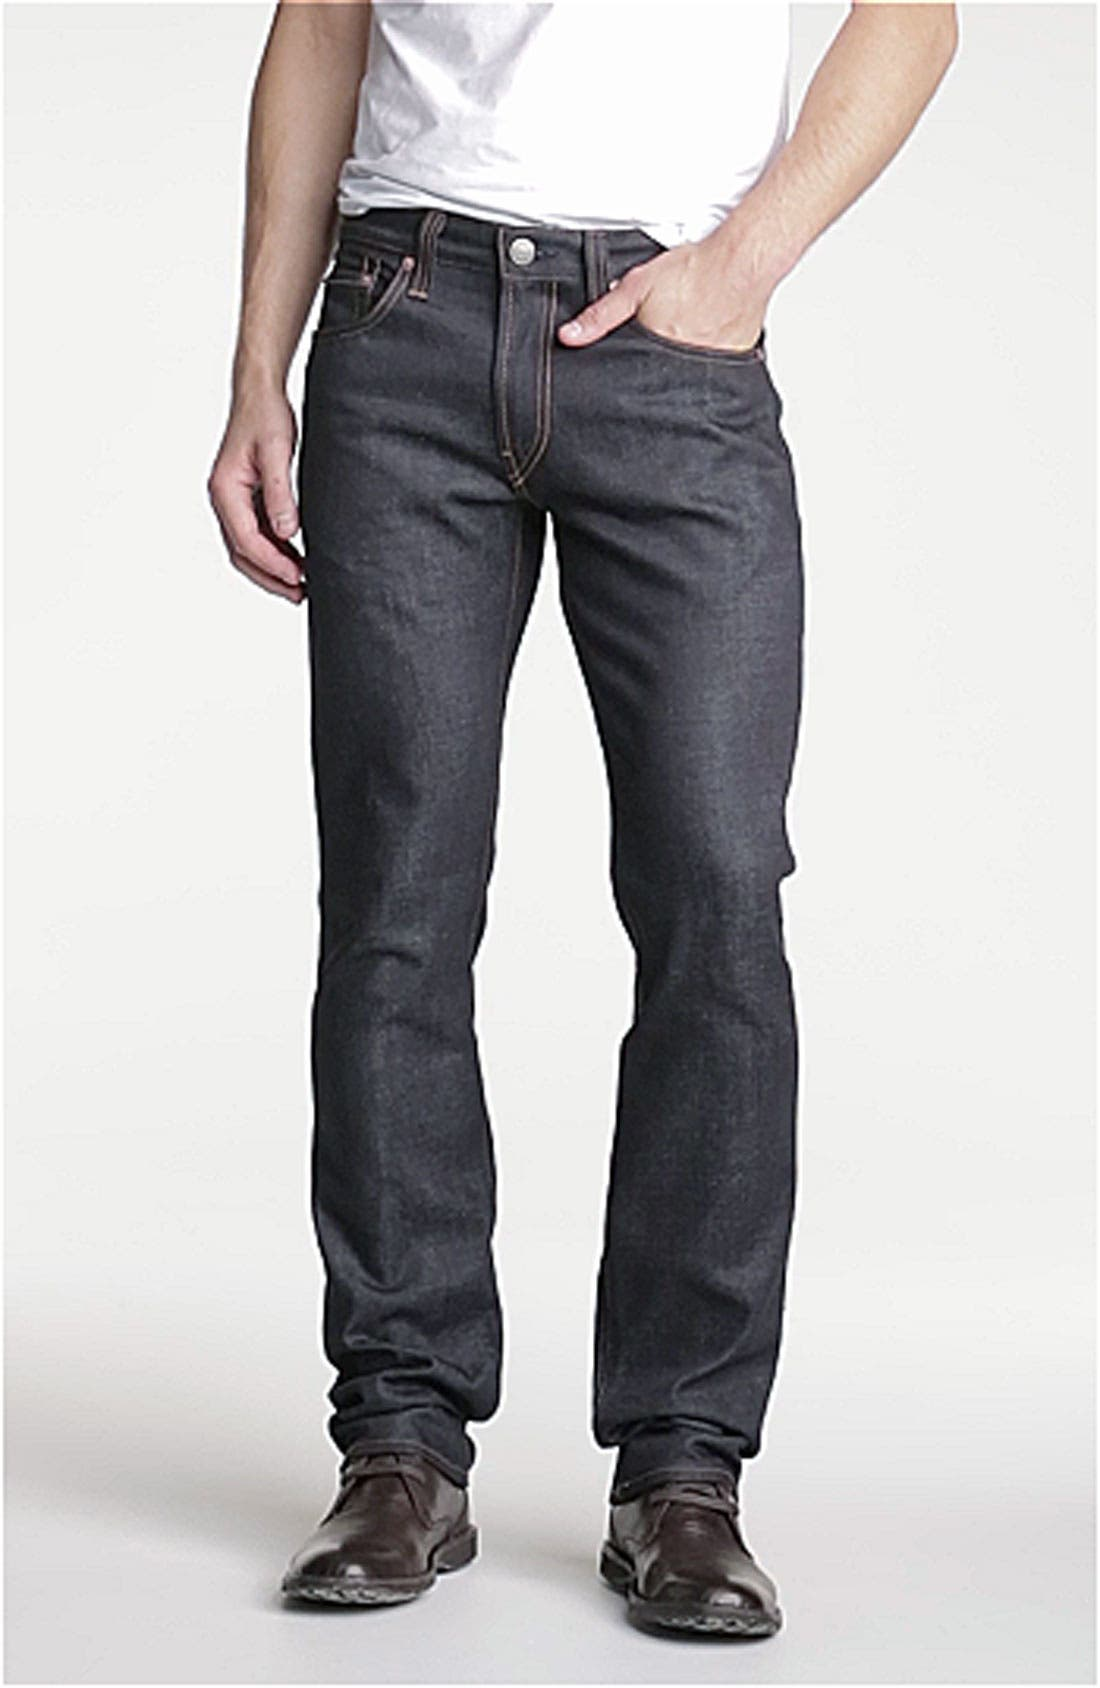 Kane Slim Straight Leg Jeans,                             Alternate thumbnail 8, color,                             RAW